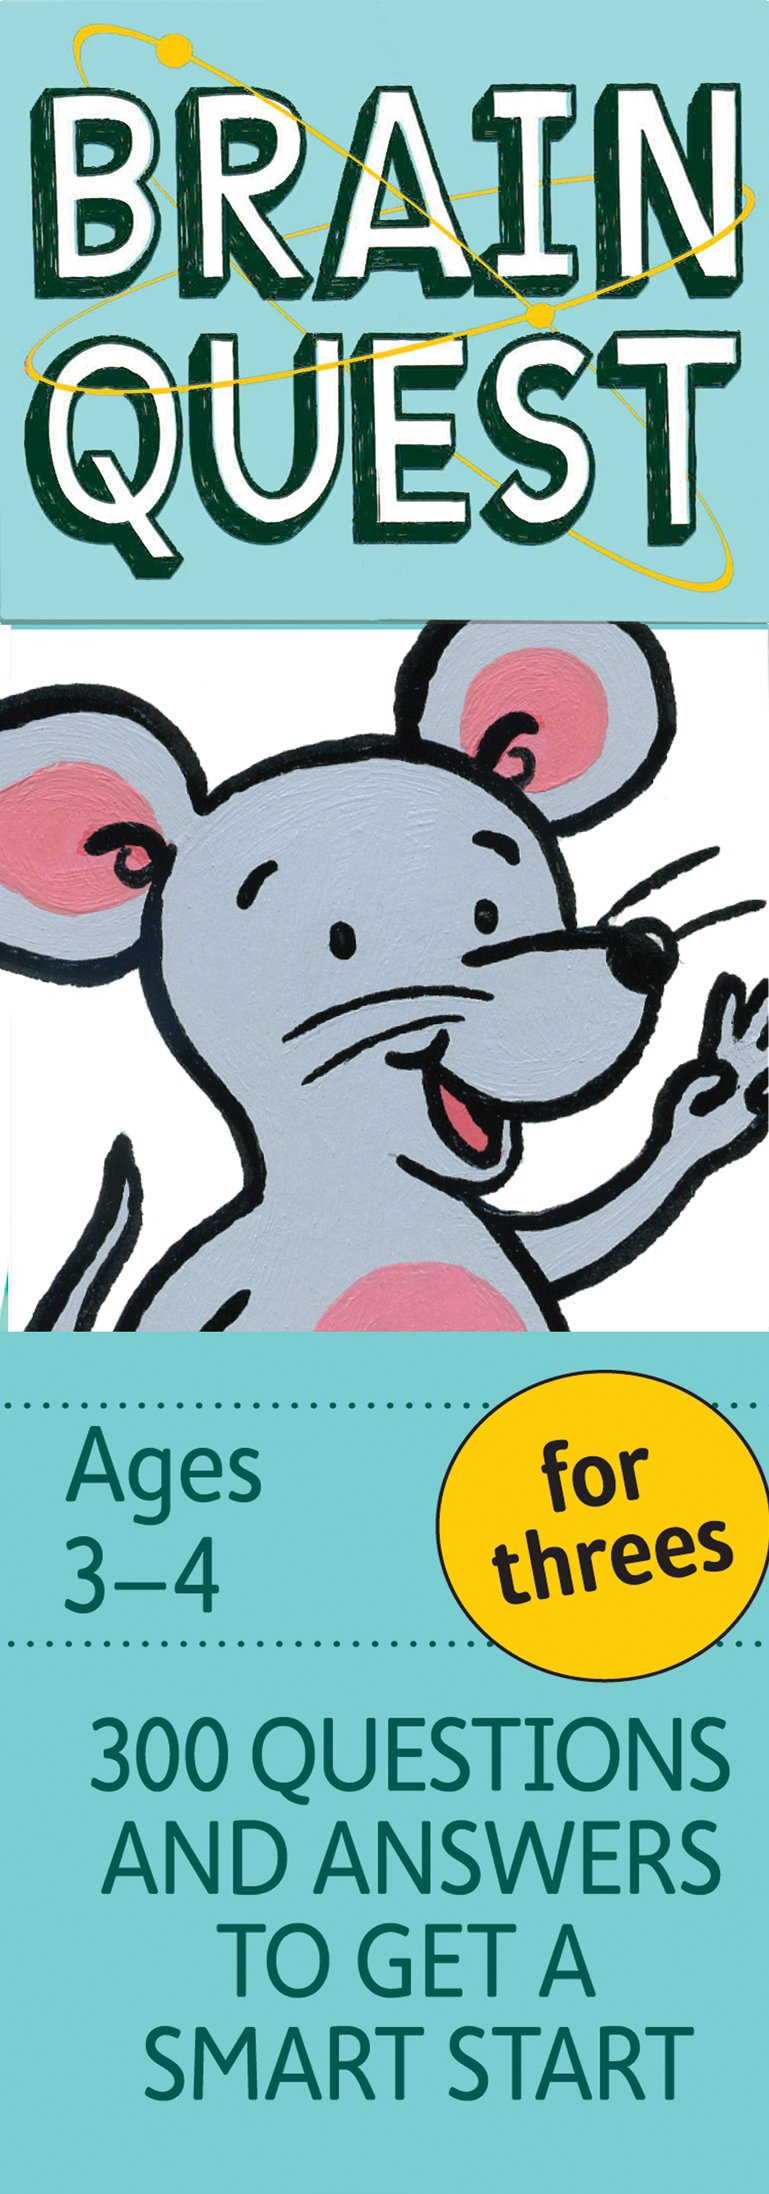 Brain Quest for Threes, revised 4th edition: 300 Questions and Answers to Get a Smart Start by Brainquest (Image #3)